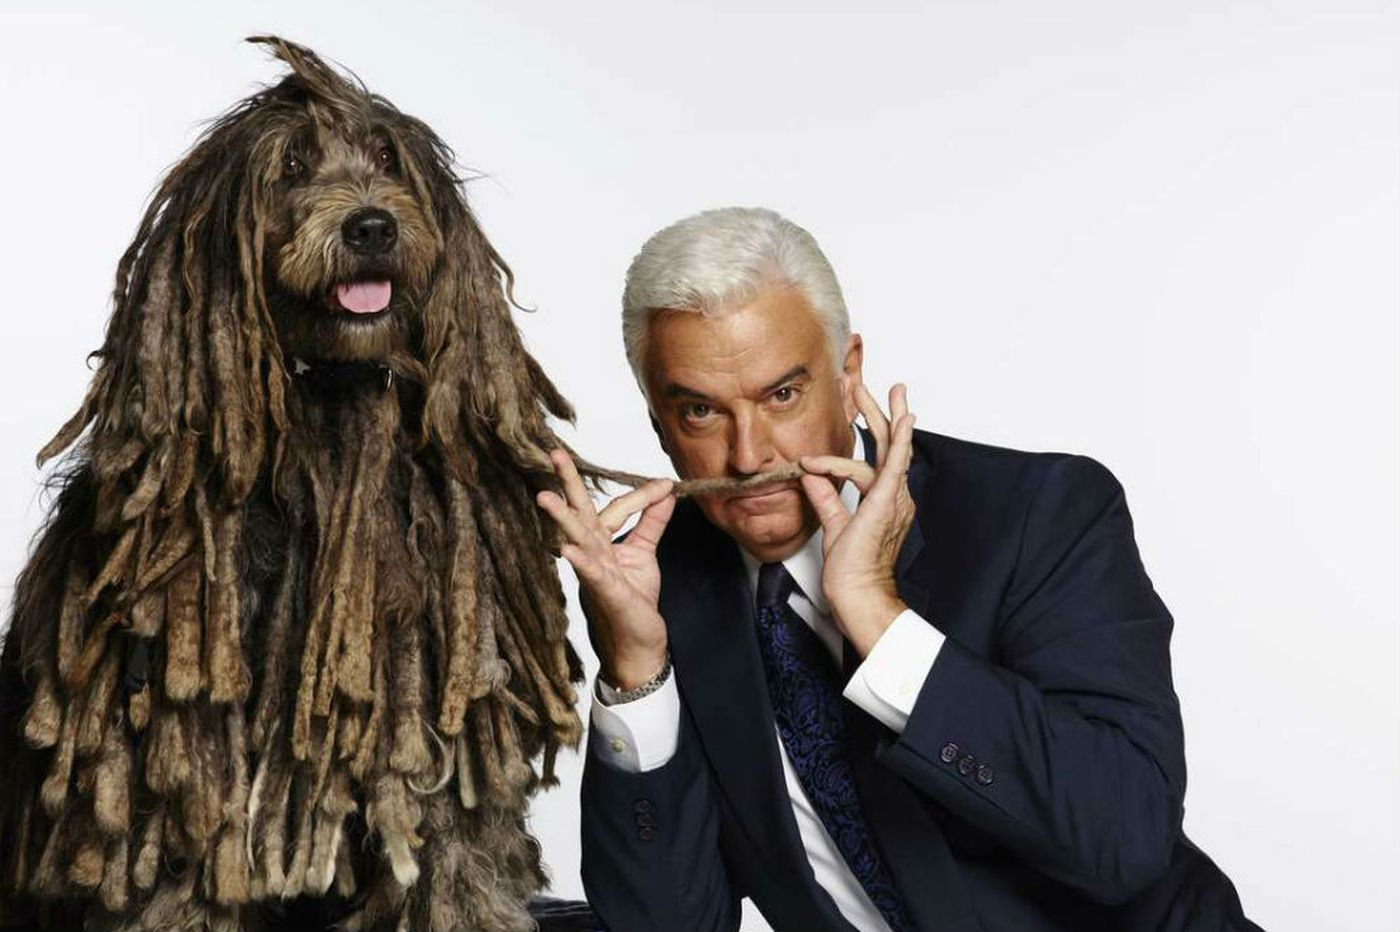 National Dog Show host John O'Hurley will greet fans at a Norristown theater, too